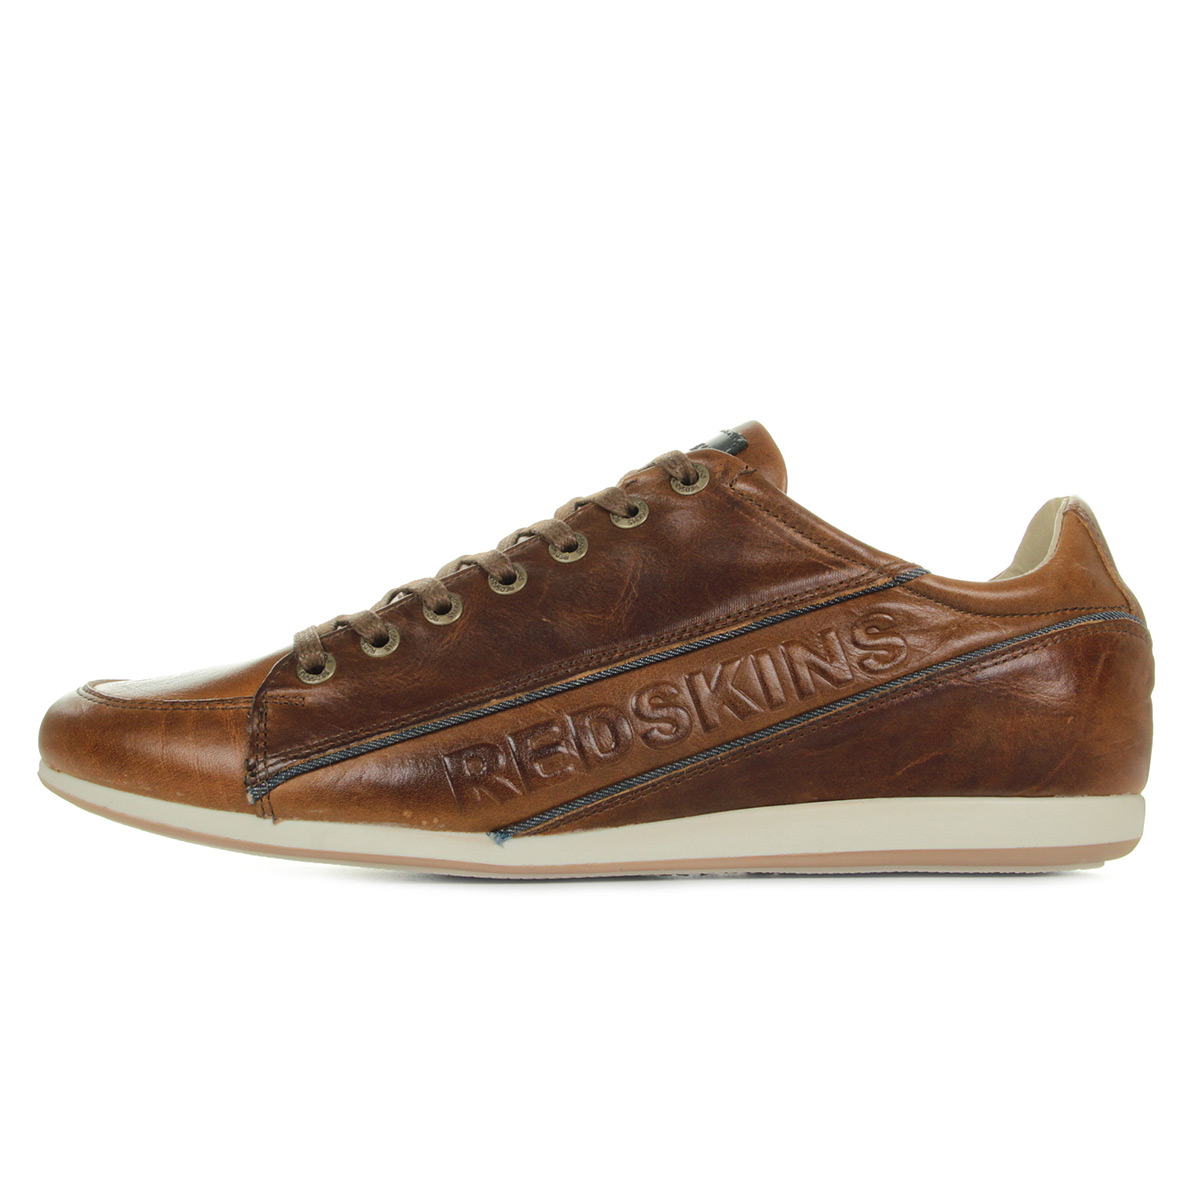 Redskins Wolk Cognac Marine UK8812P380, Baskets mode homme